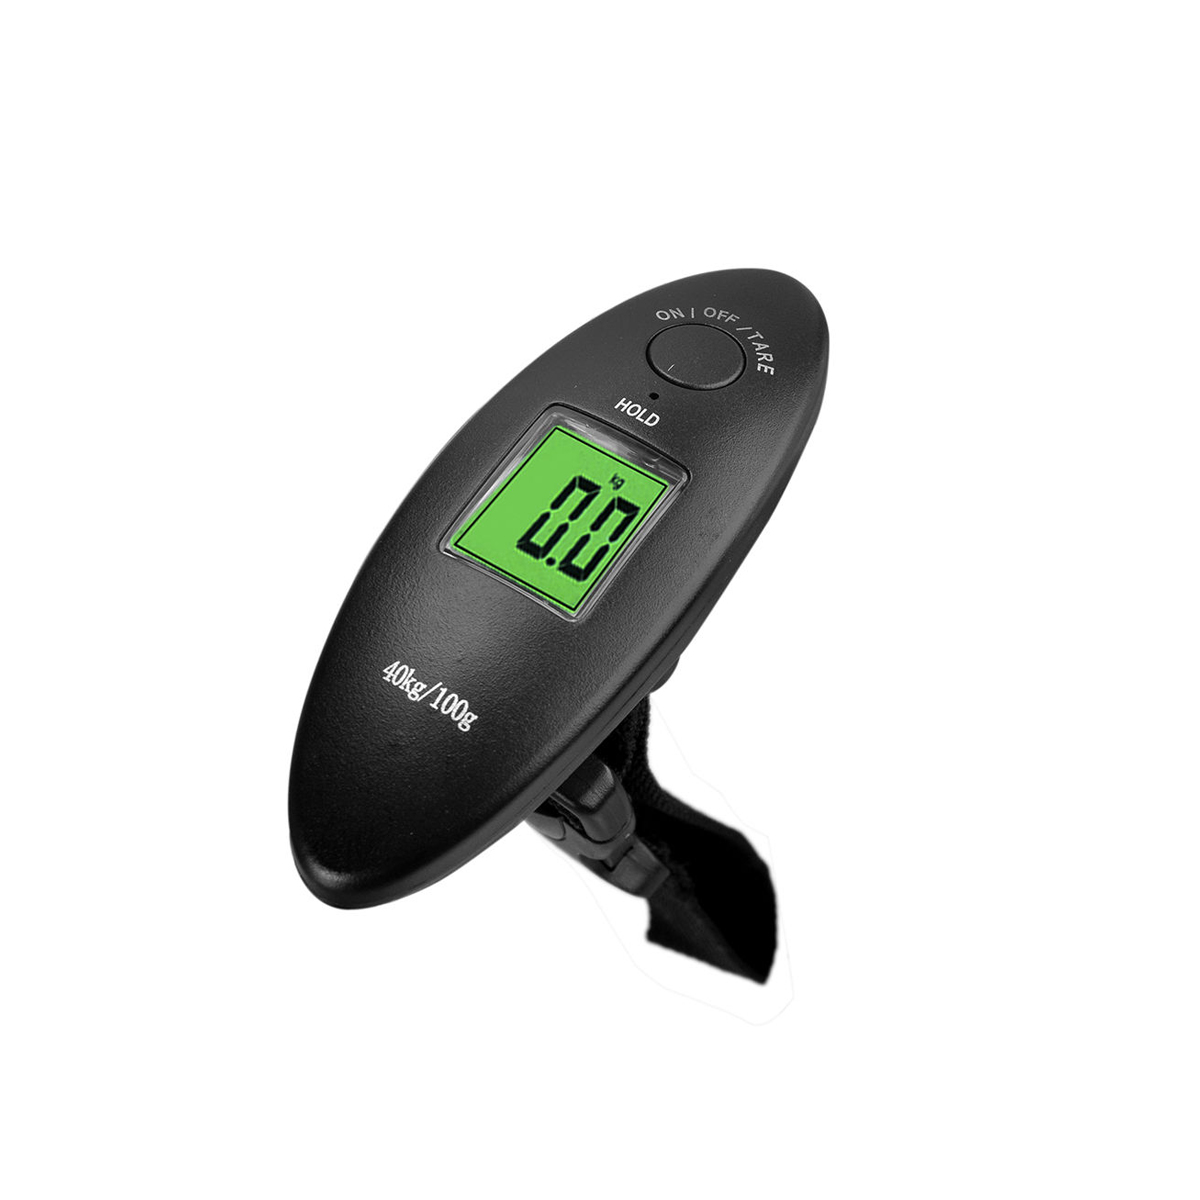 IAG-Portable-Digital-Handheld-Travel-Luggage-Scale-3- 102121PS-1200×1200